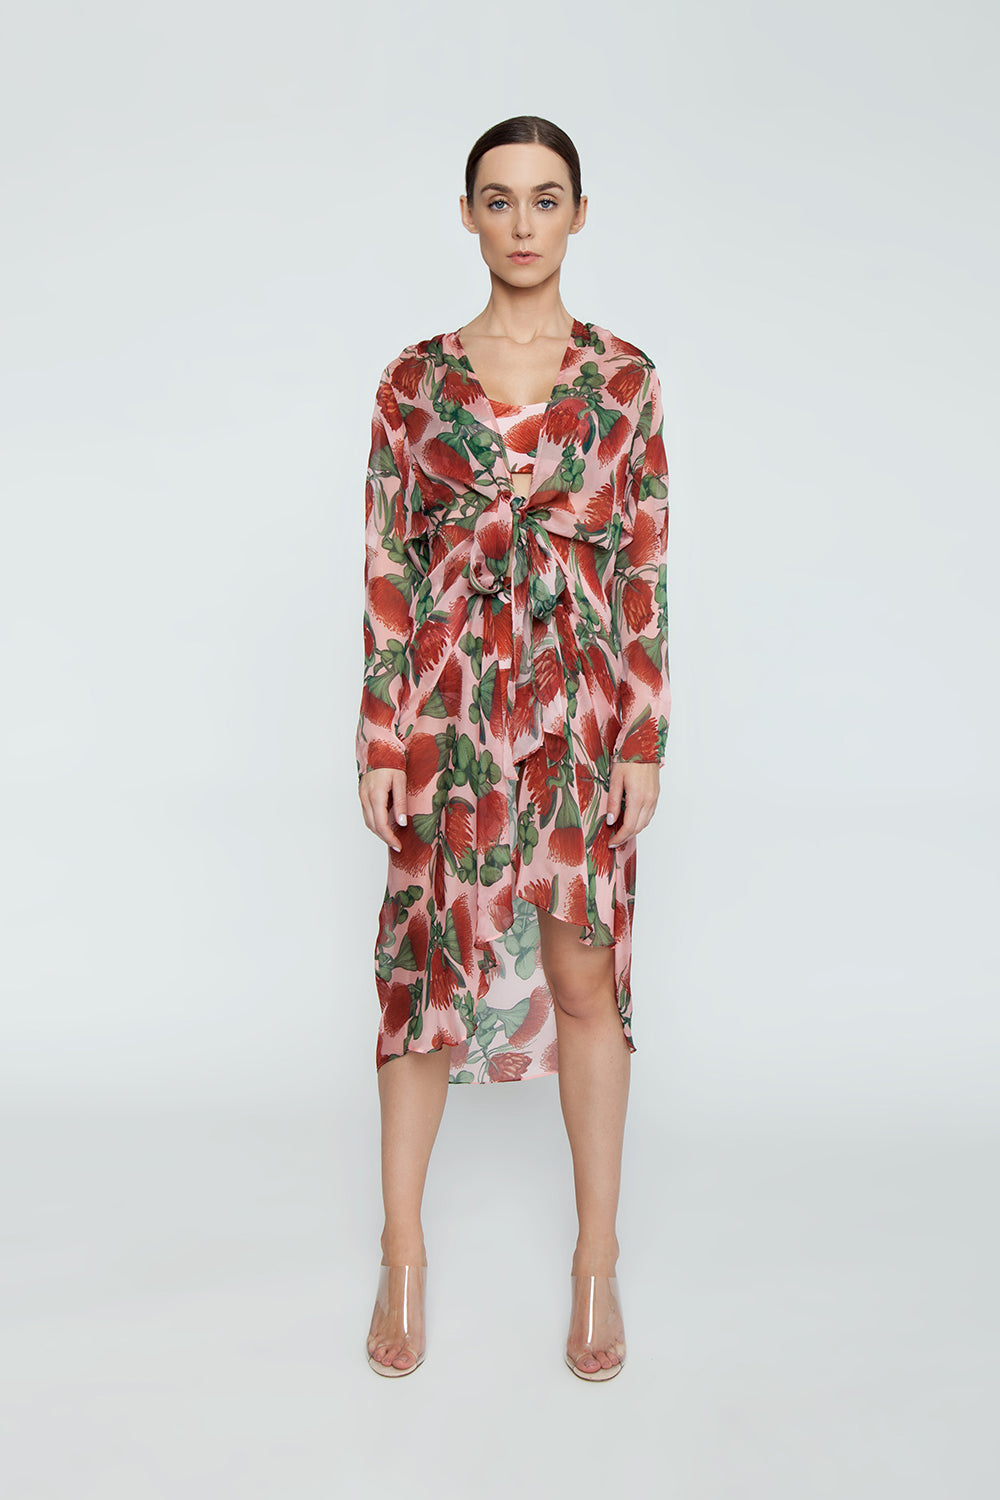 a92ca01a4c ... ADRIANA DEGREAS Silk Muslin Long Robe Cover-Up - Fiore Rose Print -  undefined undefined